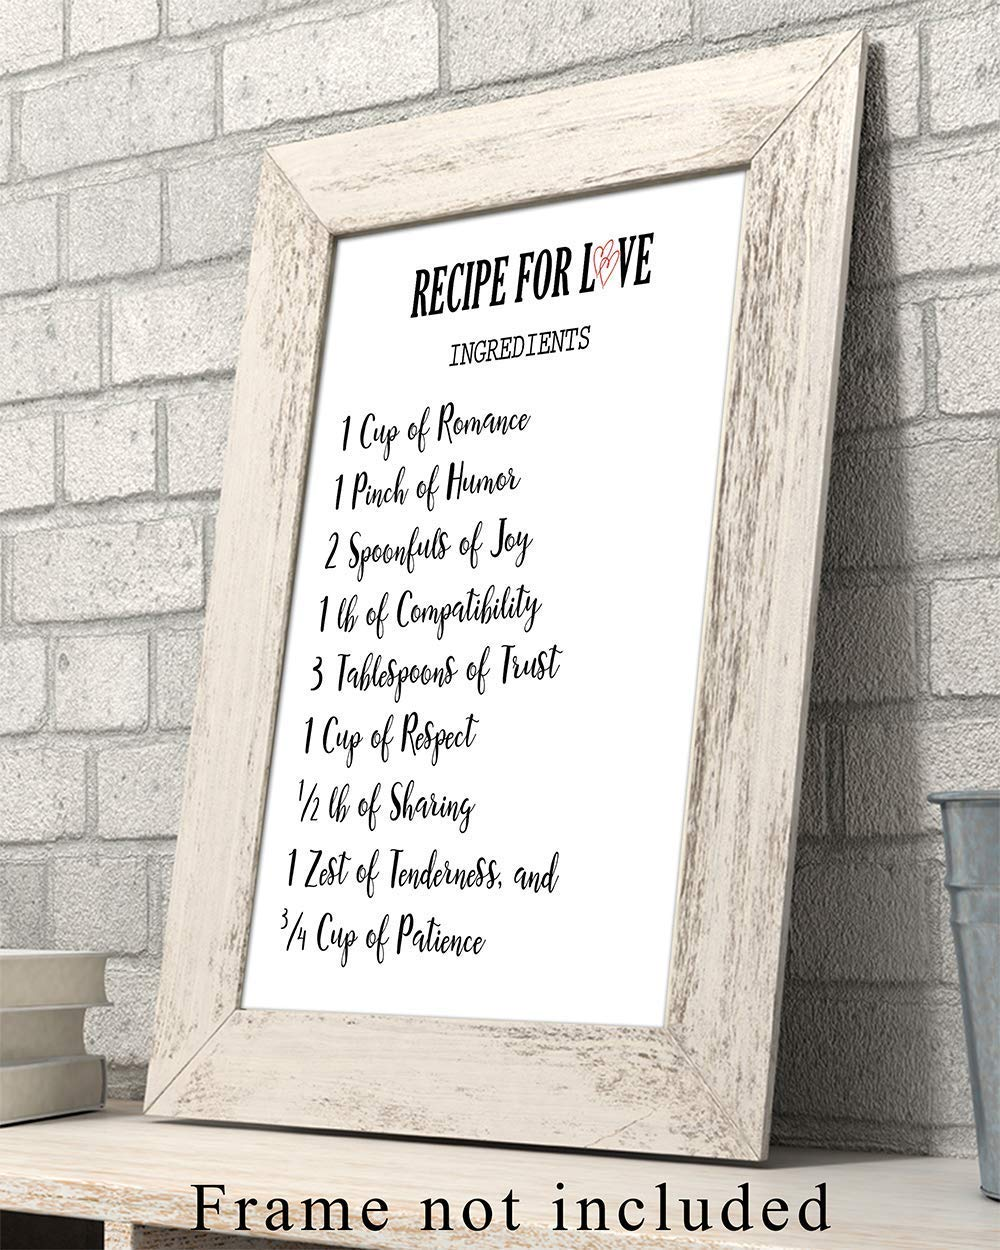 8x10 UNFRAMED Photo Inspirational Typography Wall Art Print Makes a Great Anniversary Chic Home Decor Valentines Day or Wedding Gift